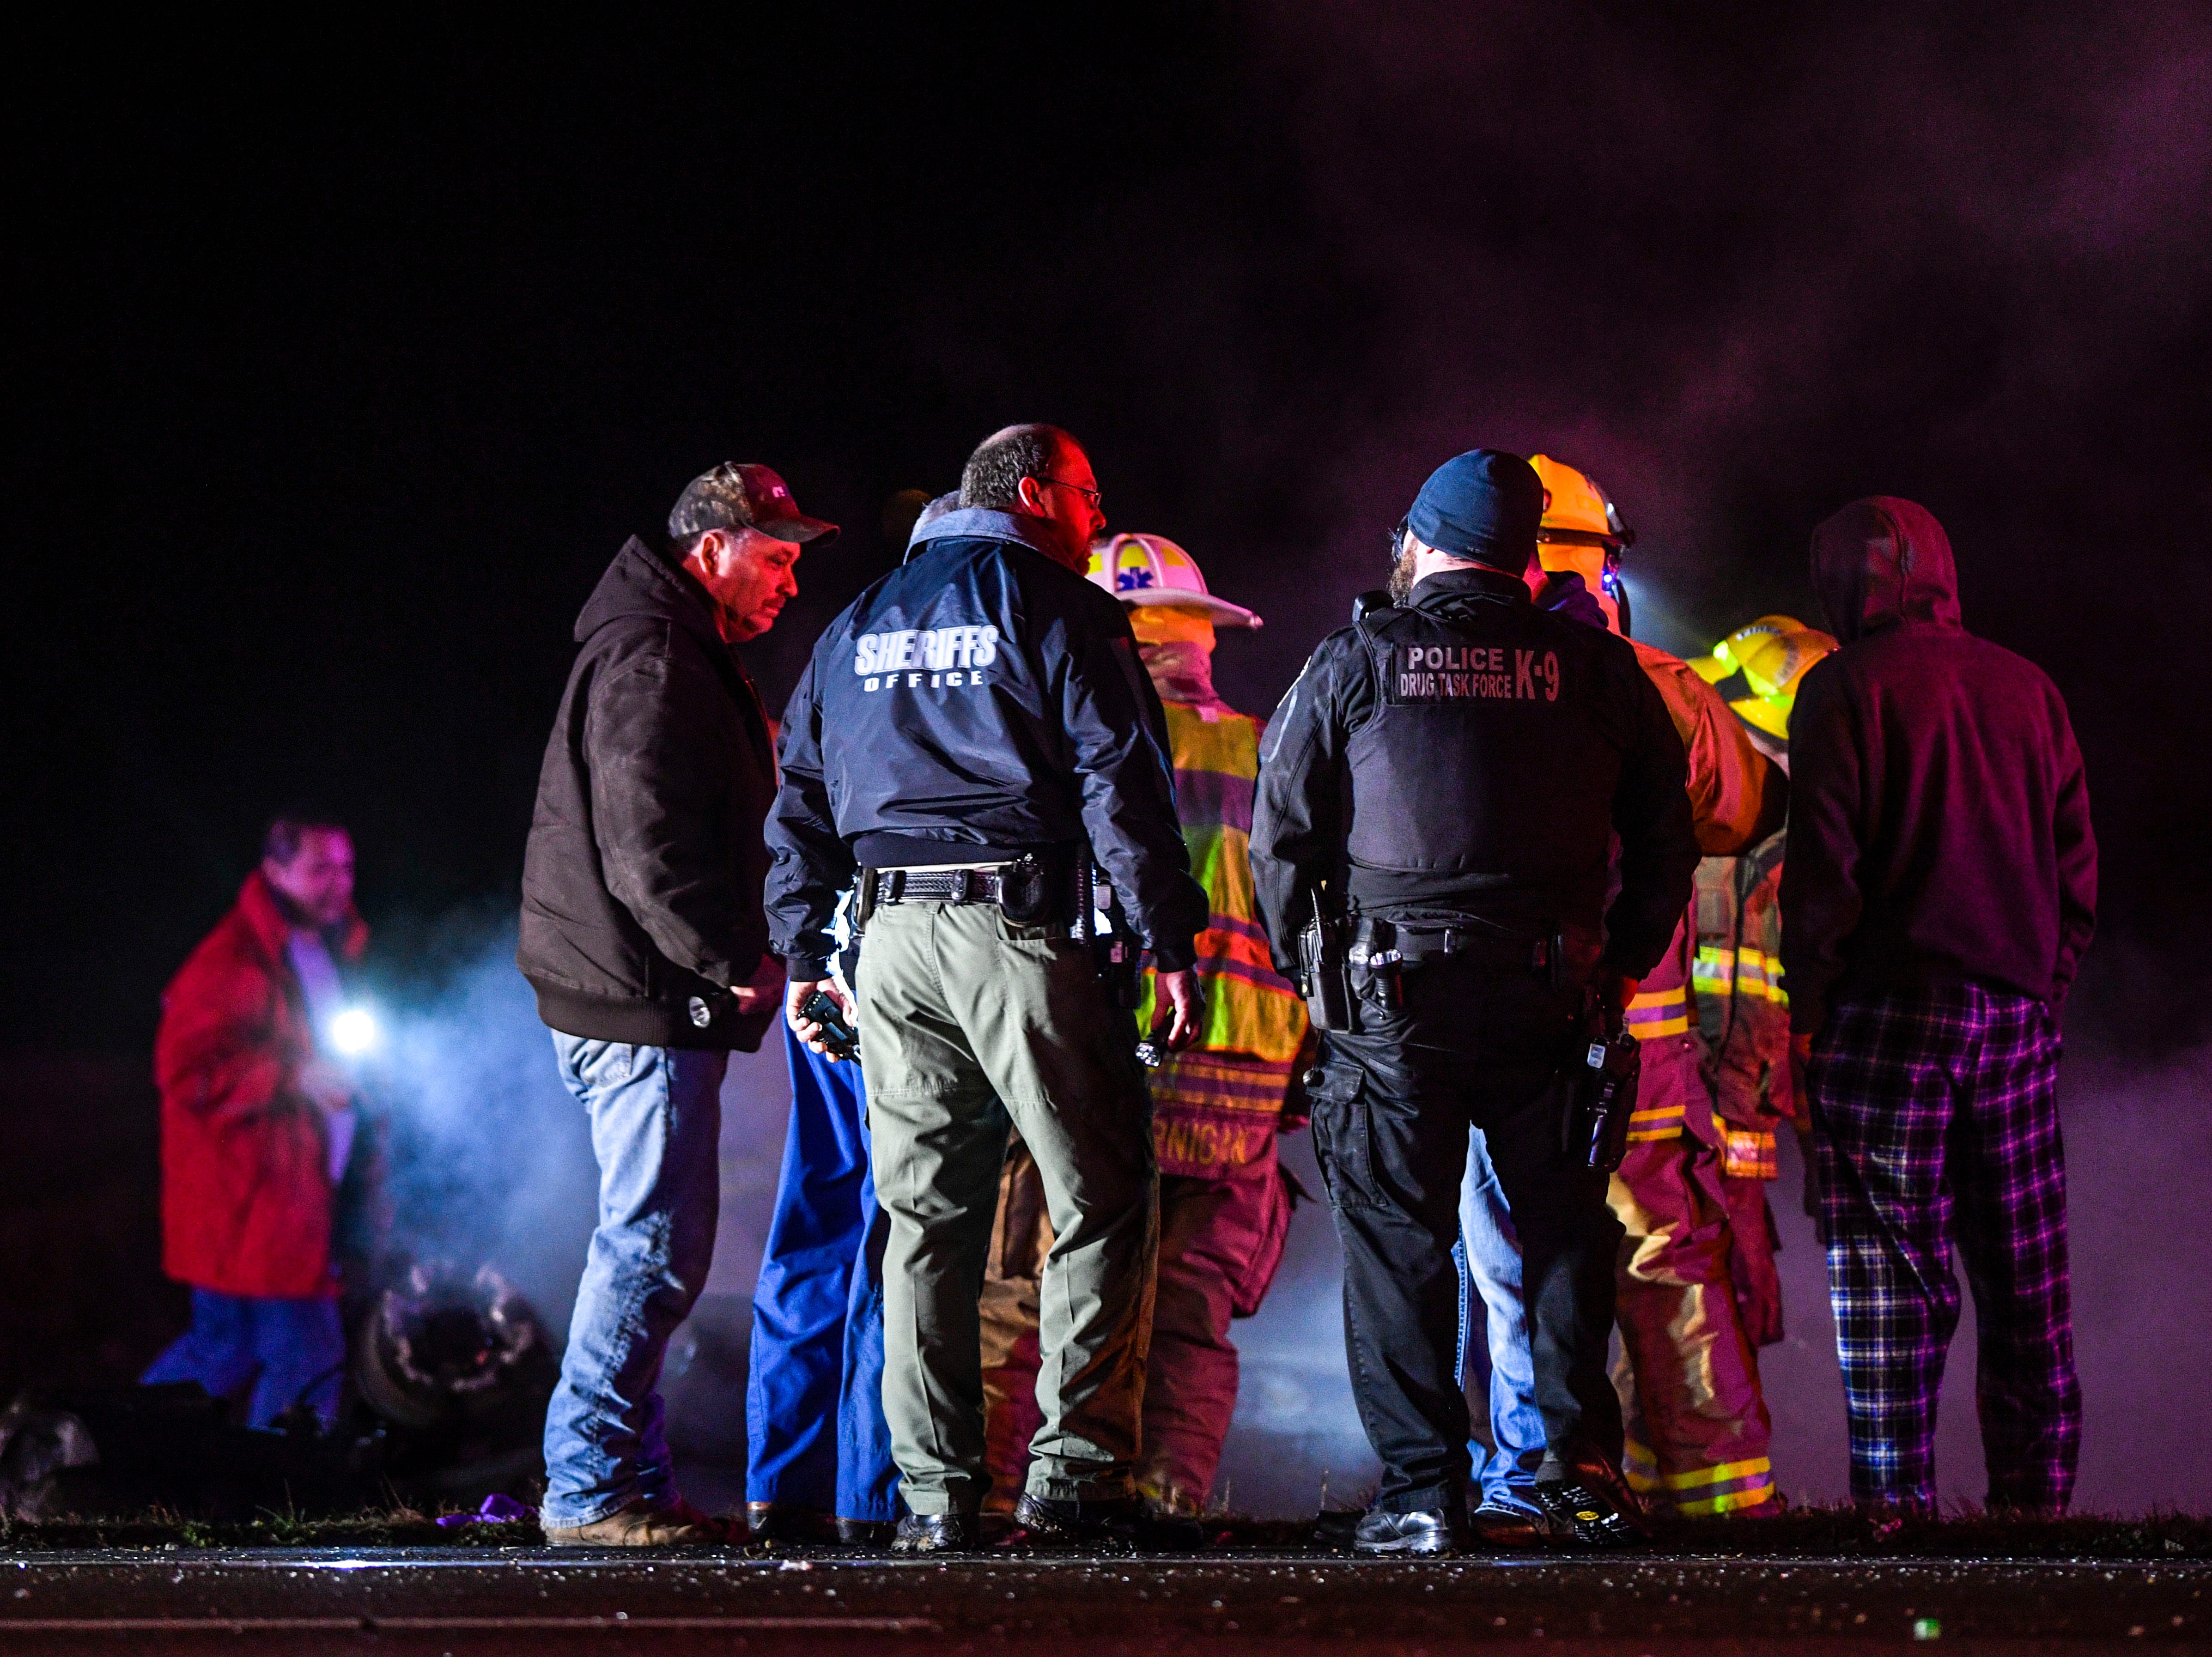 First responders from multiple departments assess the scene of a crash where a driver drove off the road, impacted a ditch, and their vehicle caught fire when going eastbound on US 412 just passed Lower Jackson Rd, in Bells, Tenn., on Friday, March 1, 2019.